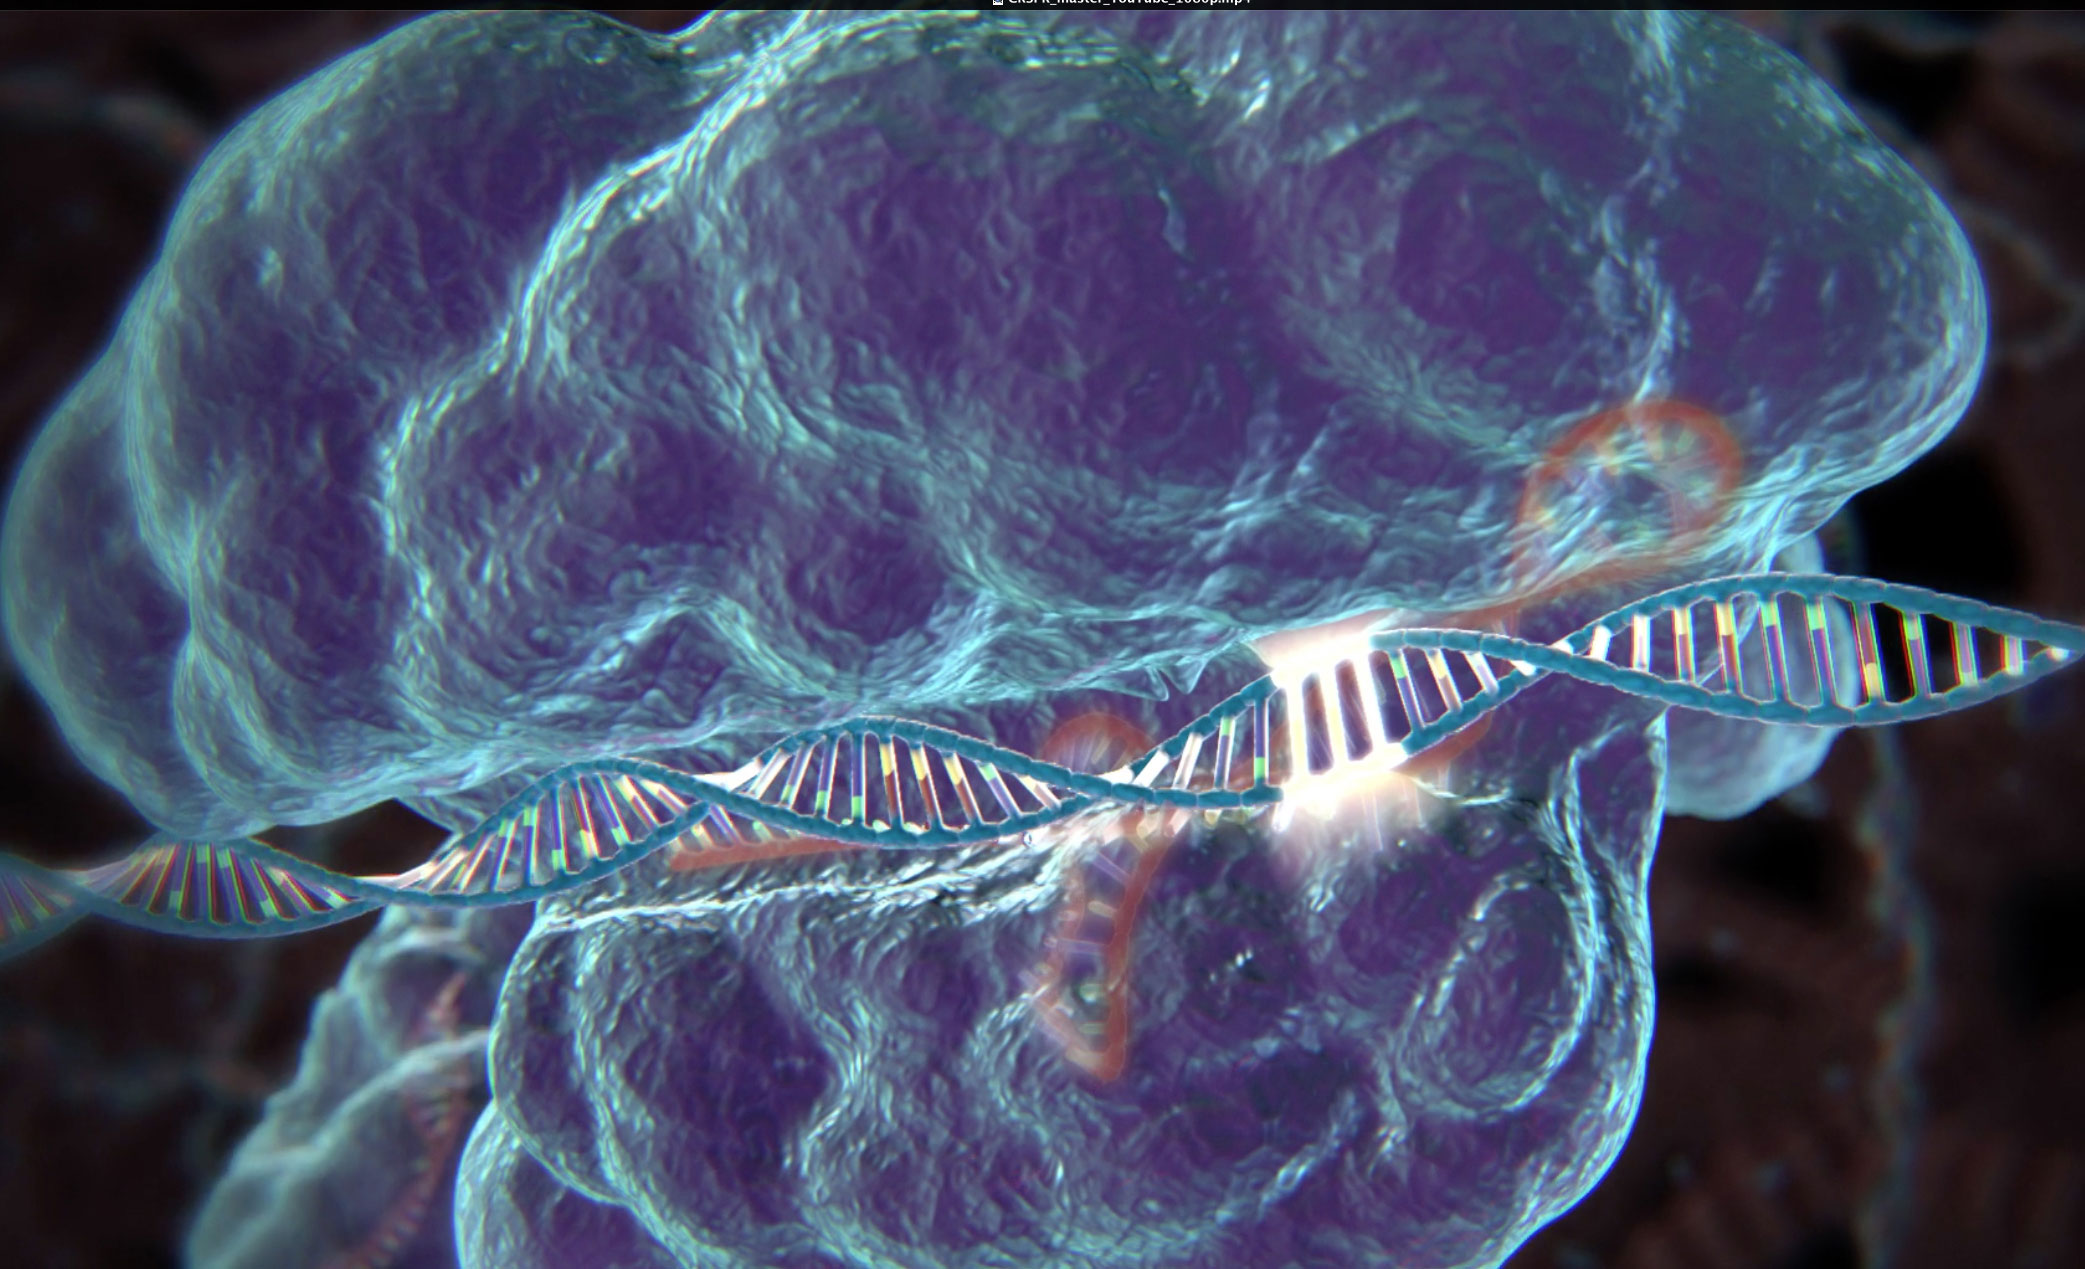 Driven by a Passion to Enable Science | GEN - Genetic